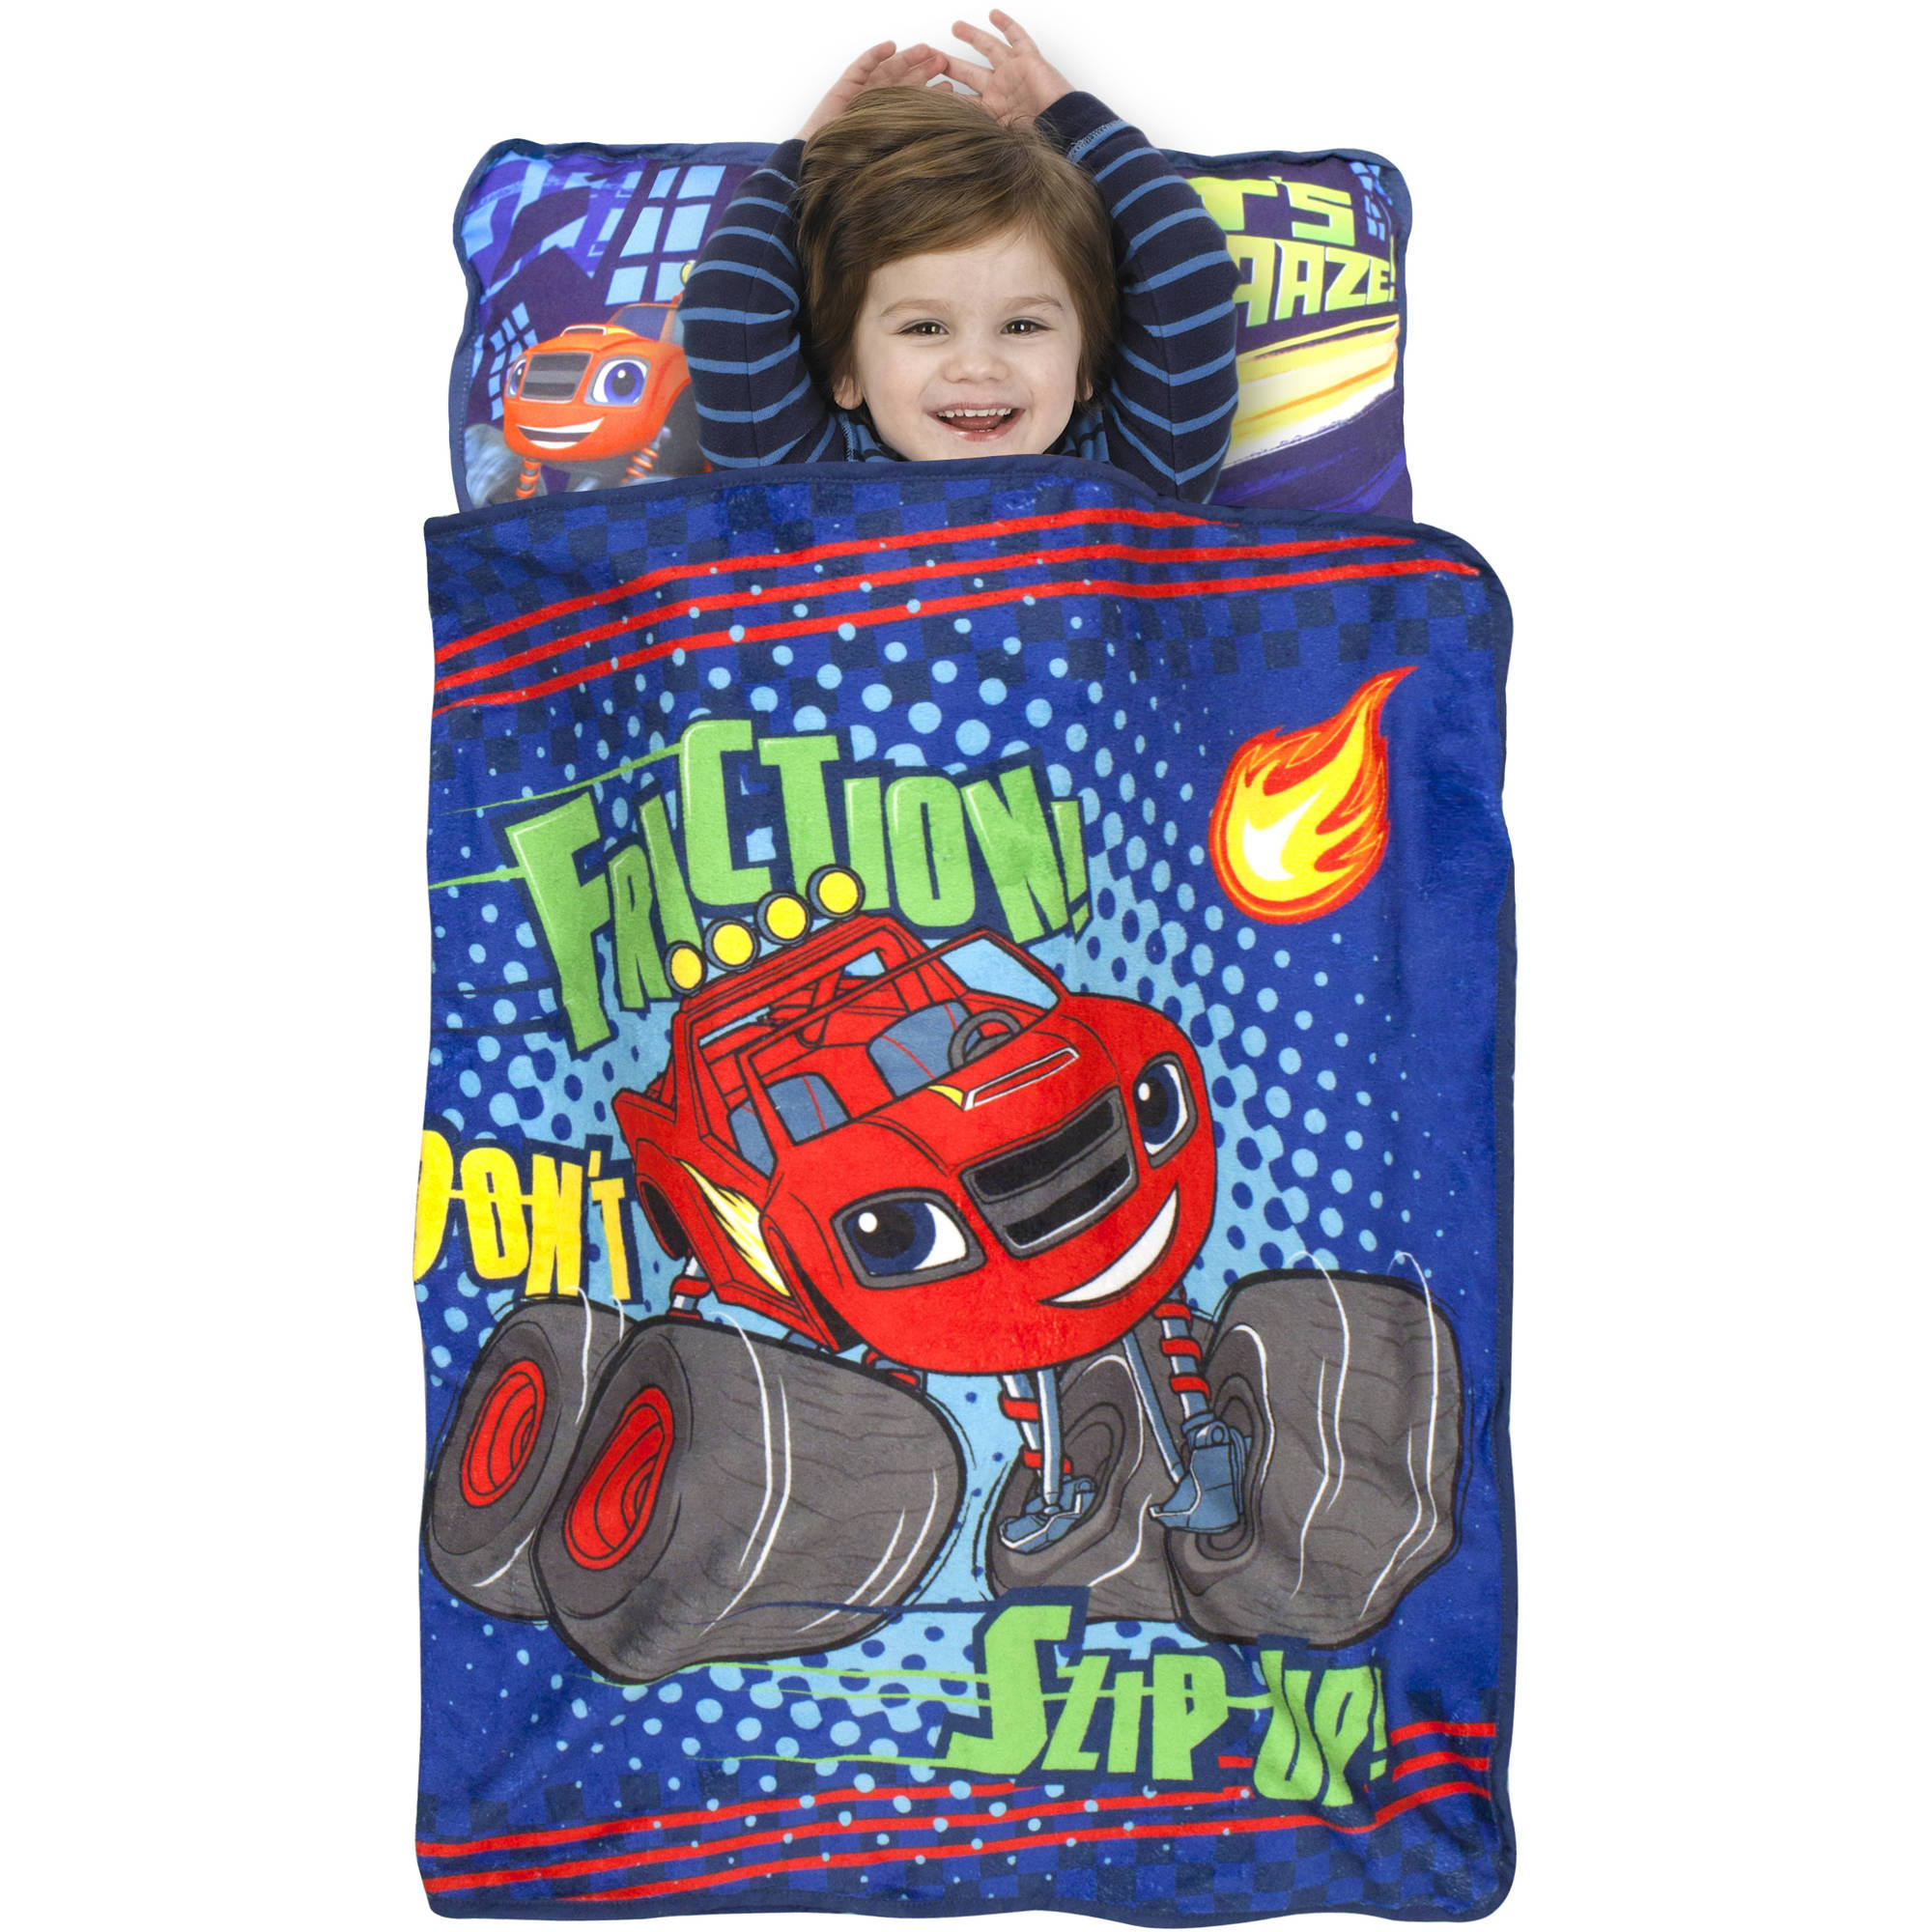 "Nickelodeon BLAZE the Monster Machine ""Don't Slip Up"" Toddler Nap Mat"